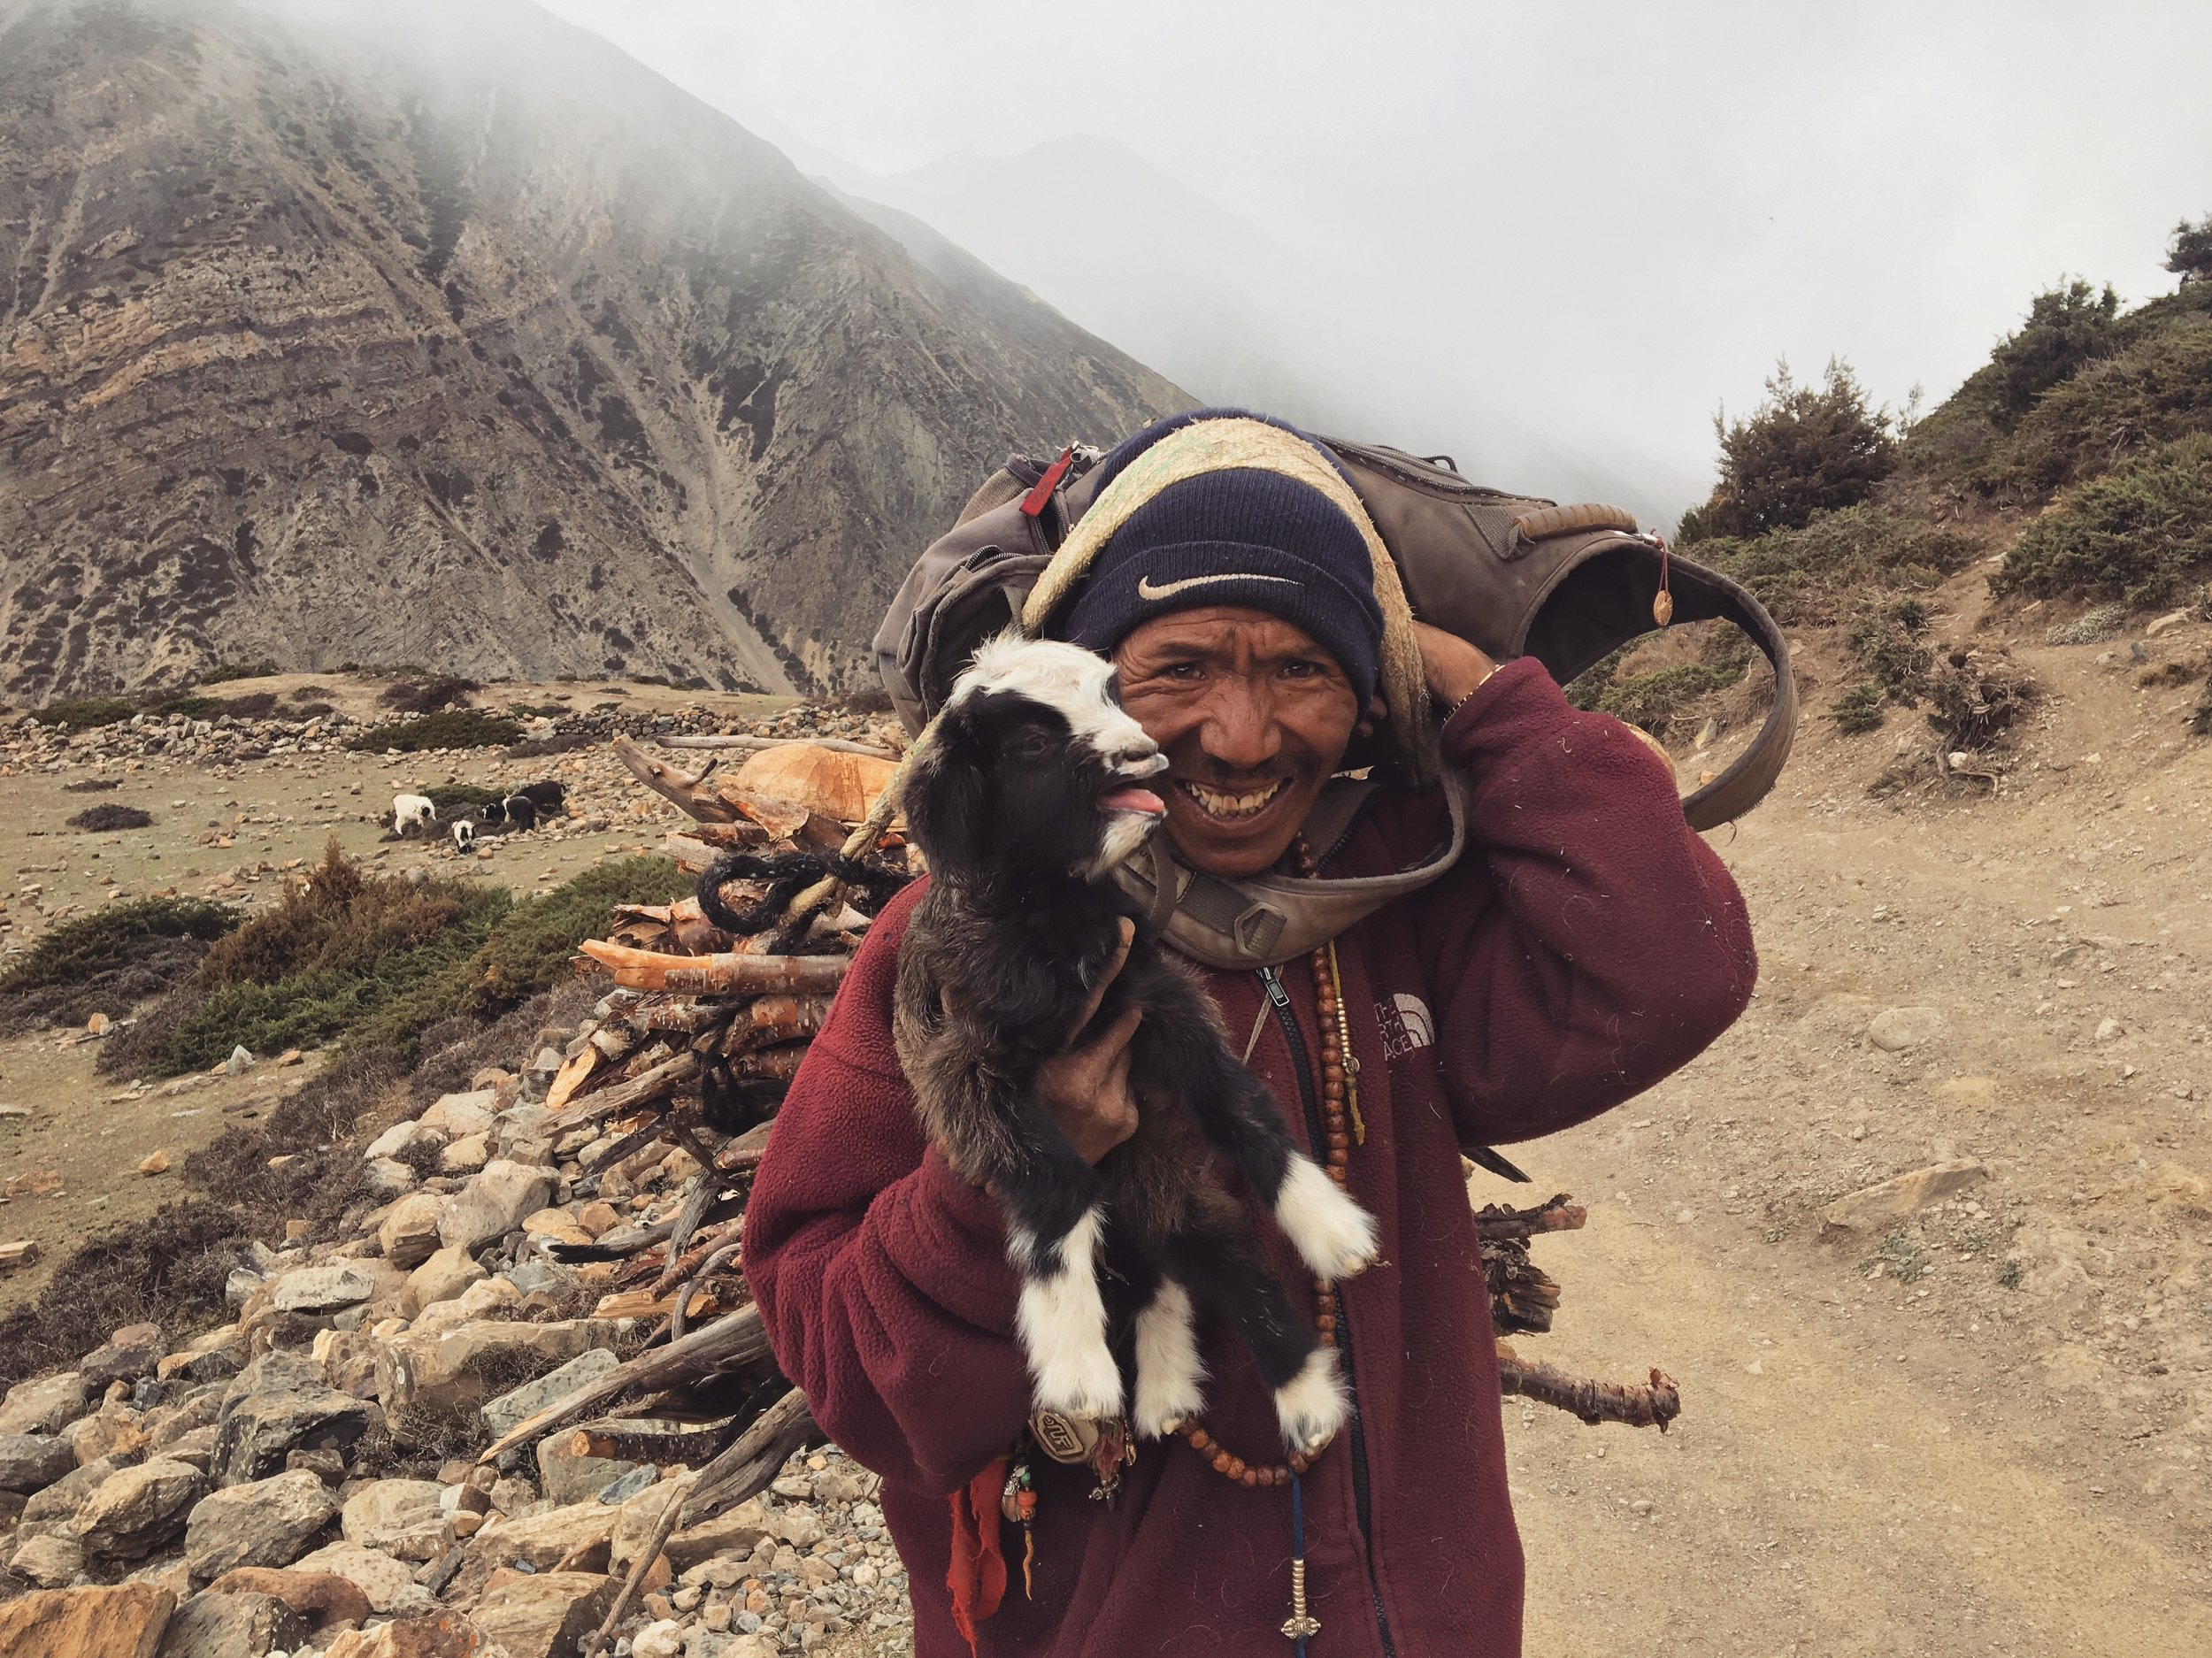 Happiest man and a screaming baby goat.